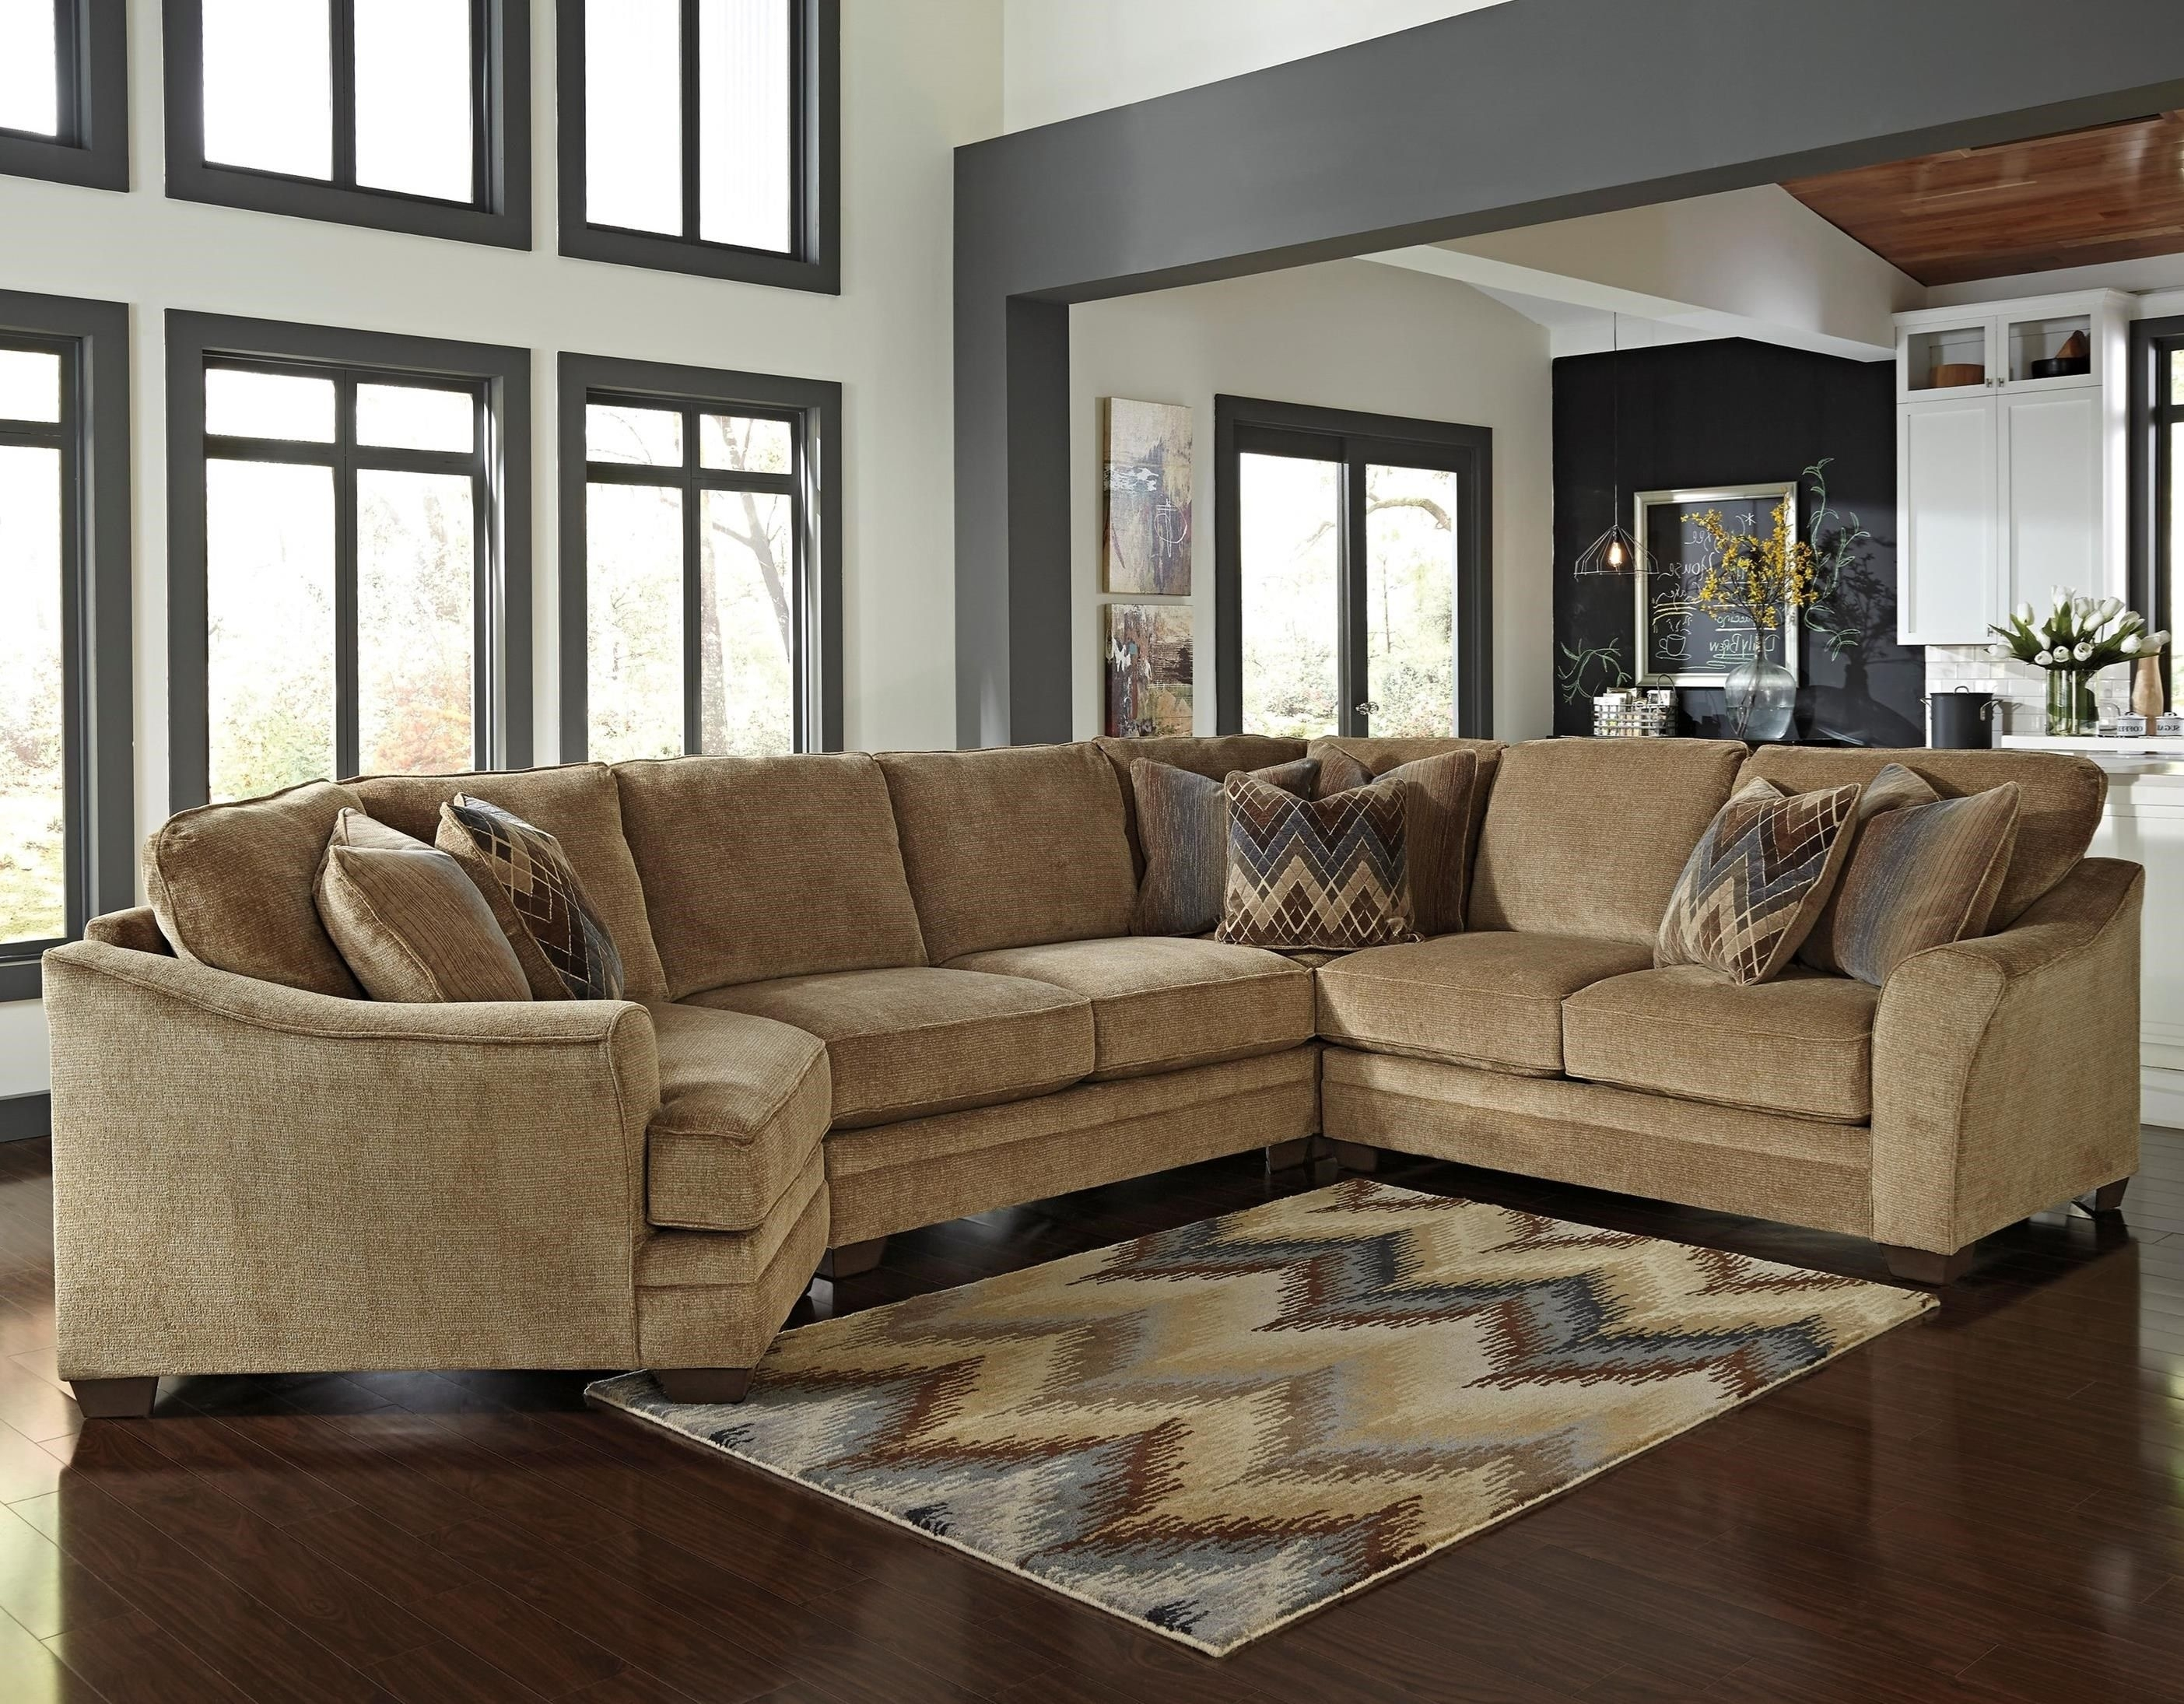 Pintammy Walter On Farmhouse Style | Pinterest | Farmhouse Style For Norfolk Chocolate 3 Piece Sectionals With Raf Chaise (Image 22 of 25)